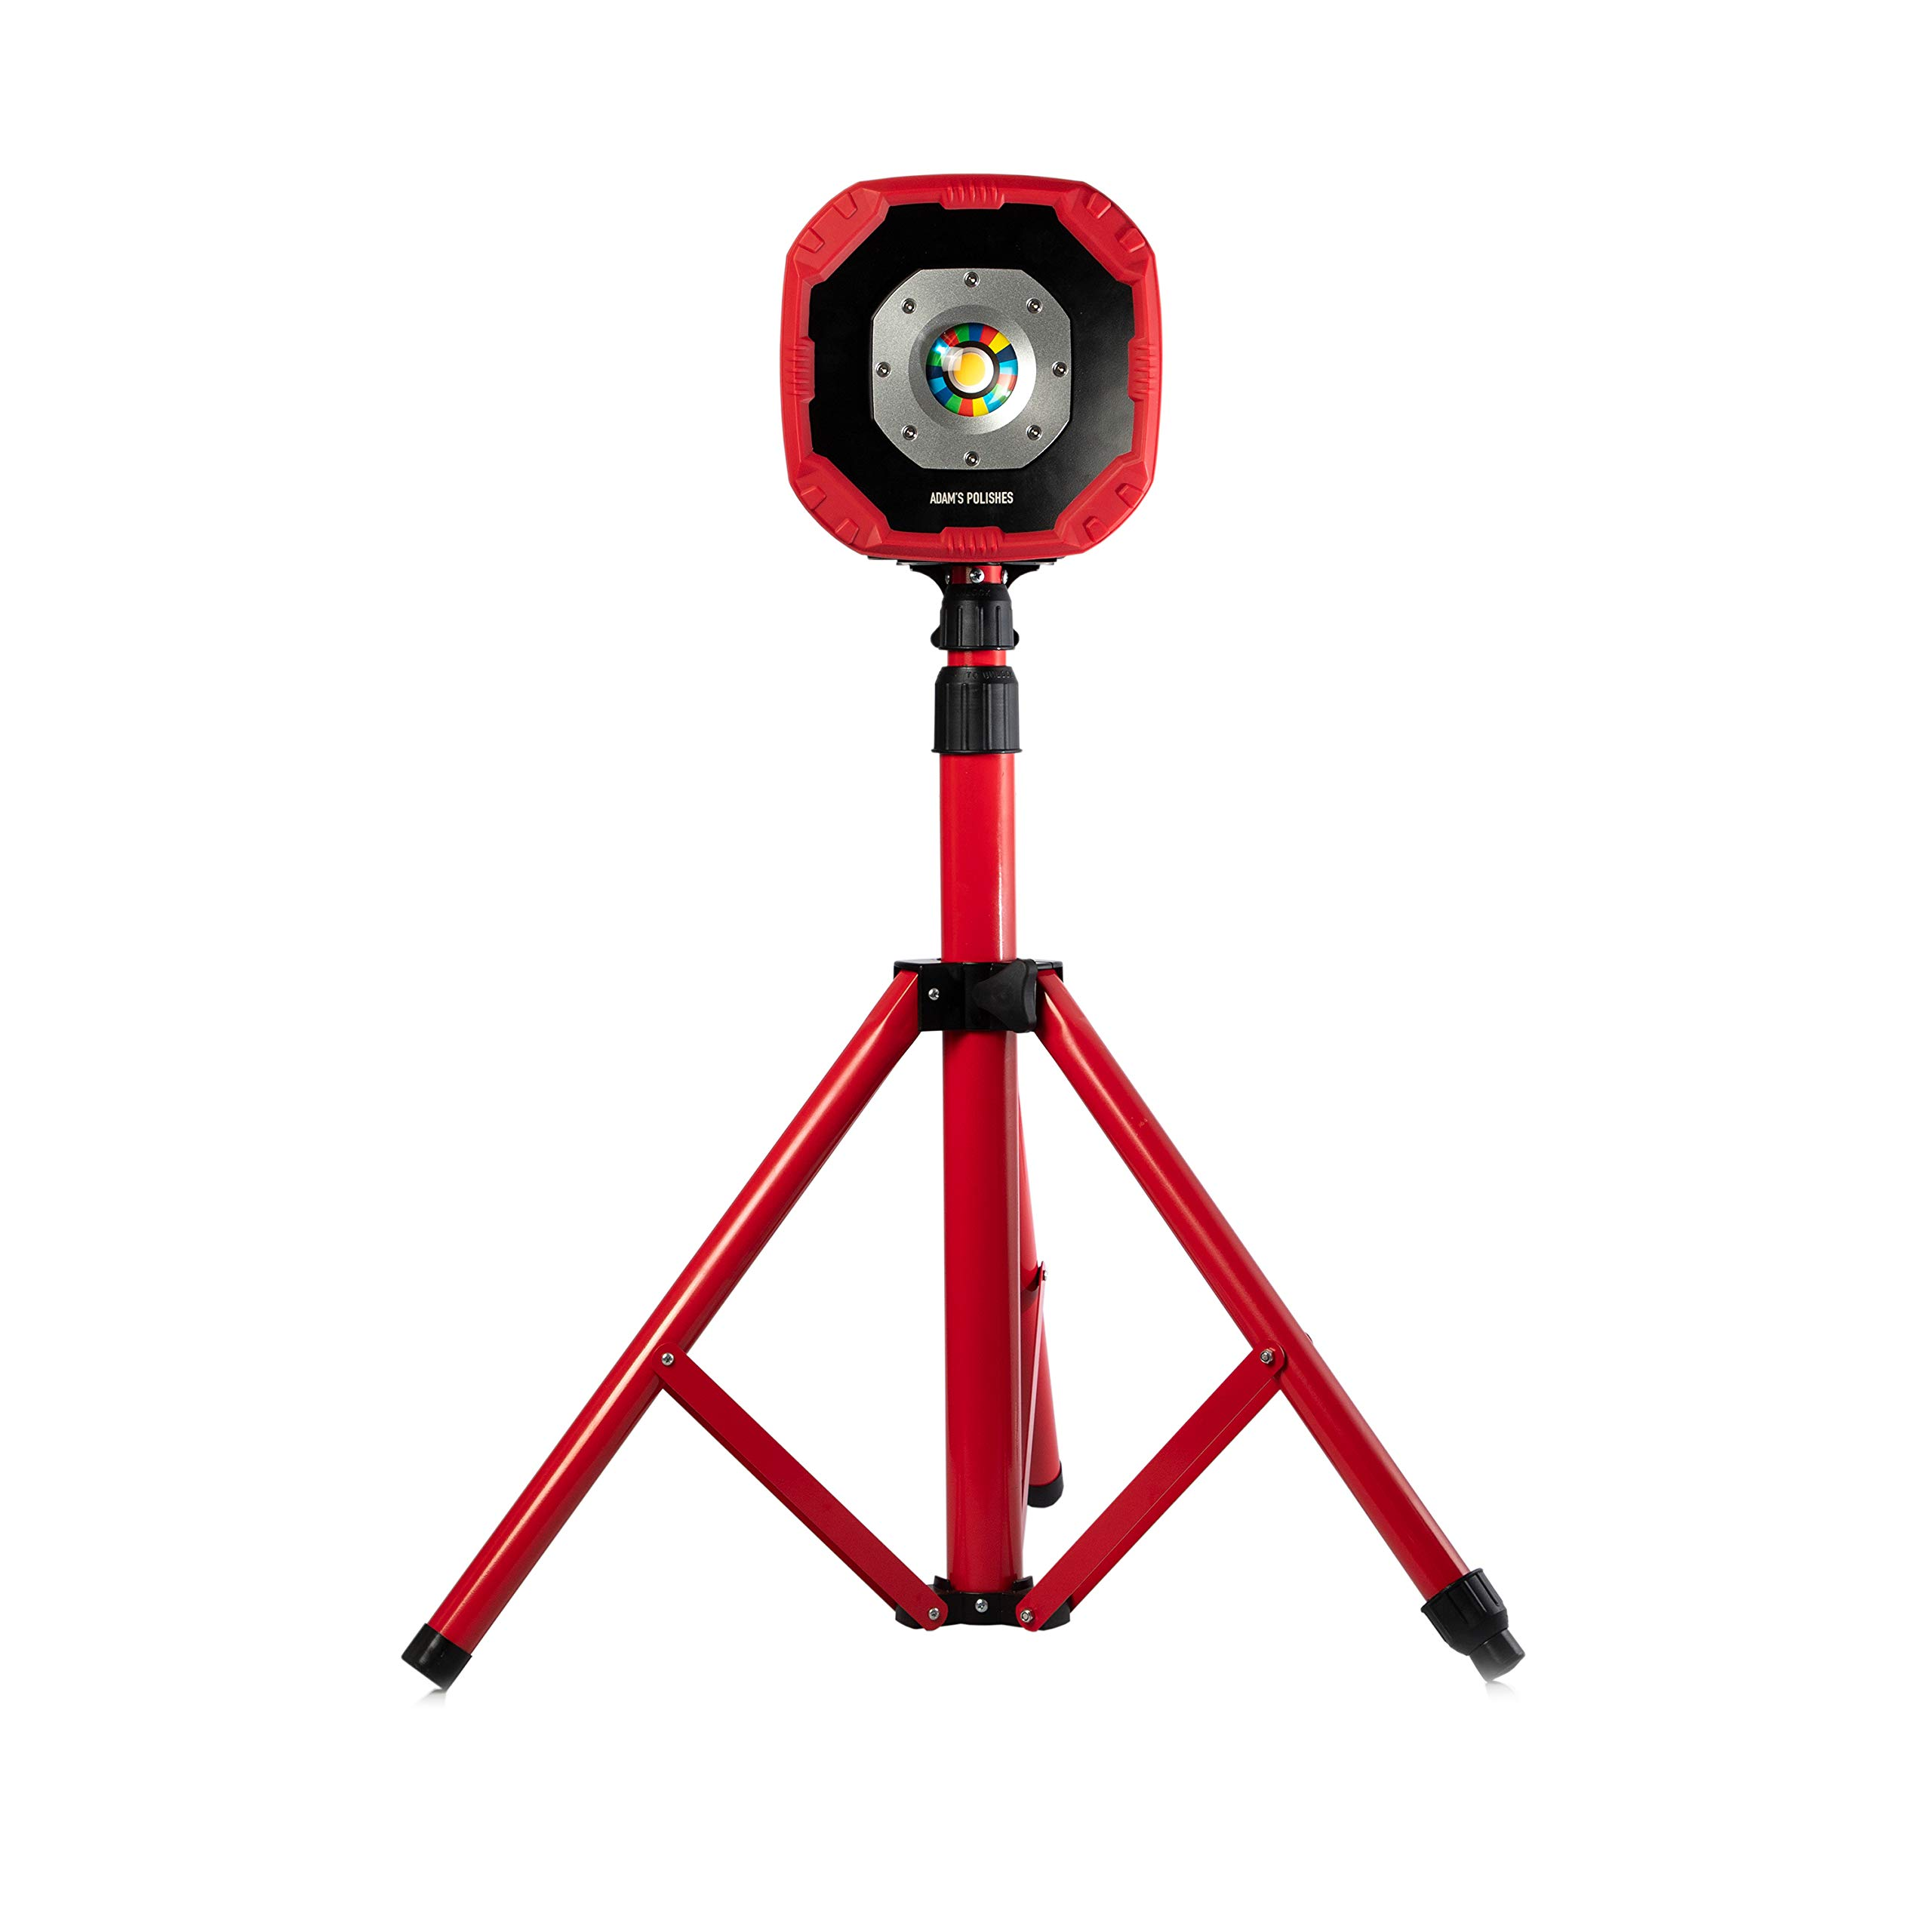 Adam's Color Match LED Light & Ultra Light Tripod - Ultra Bright 1800/600 Lumens Exposes Imperfections, Swirls, and More for Professional Detailing